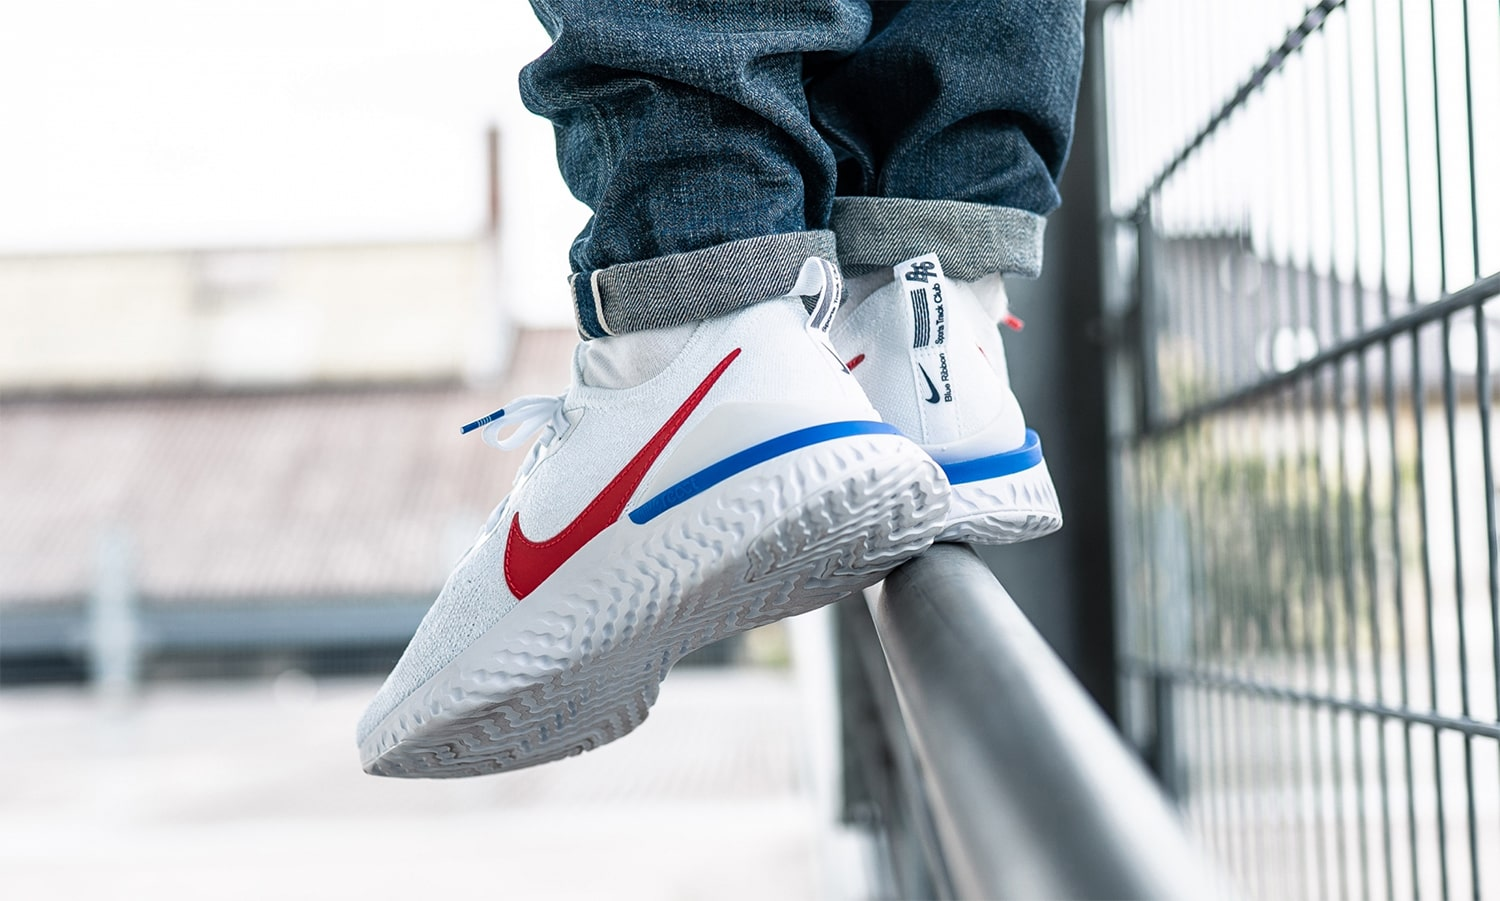 watch 3ba0f aa591 The OG Nike Cortez Inspires this New Epic React Flyknit 2